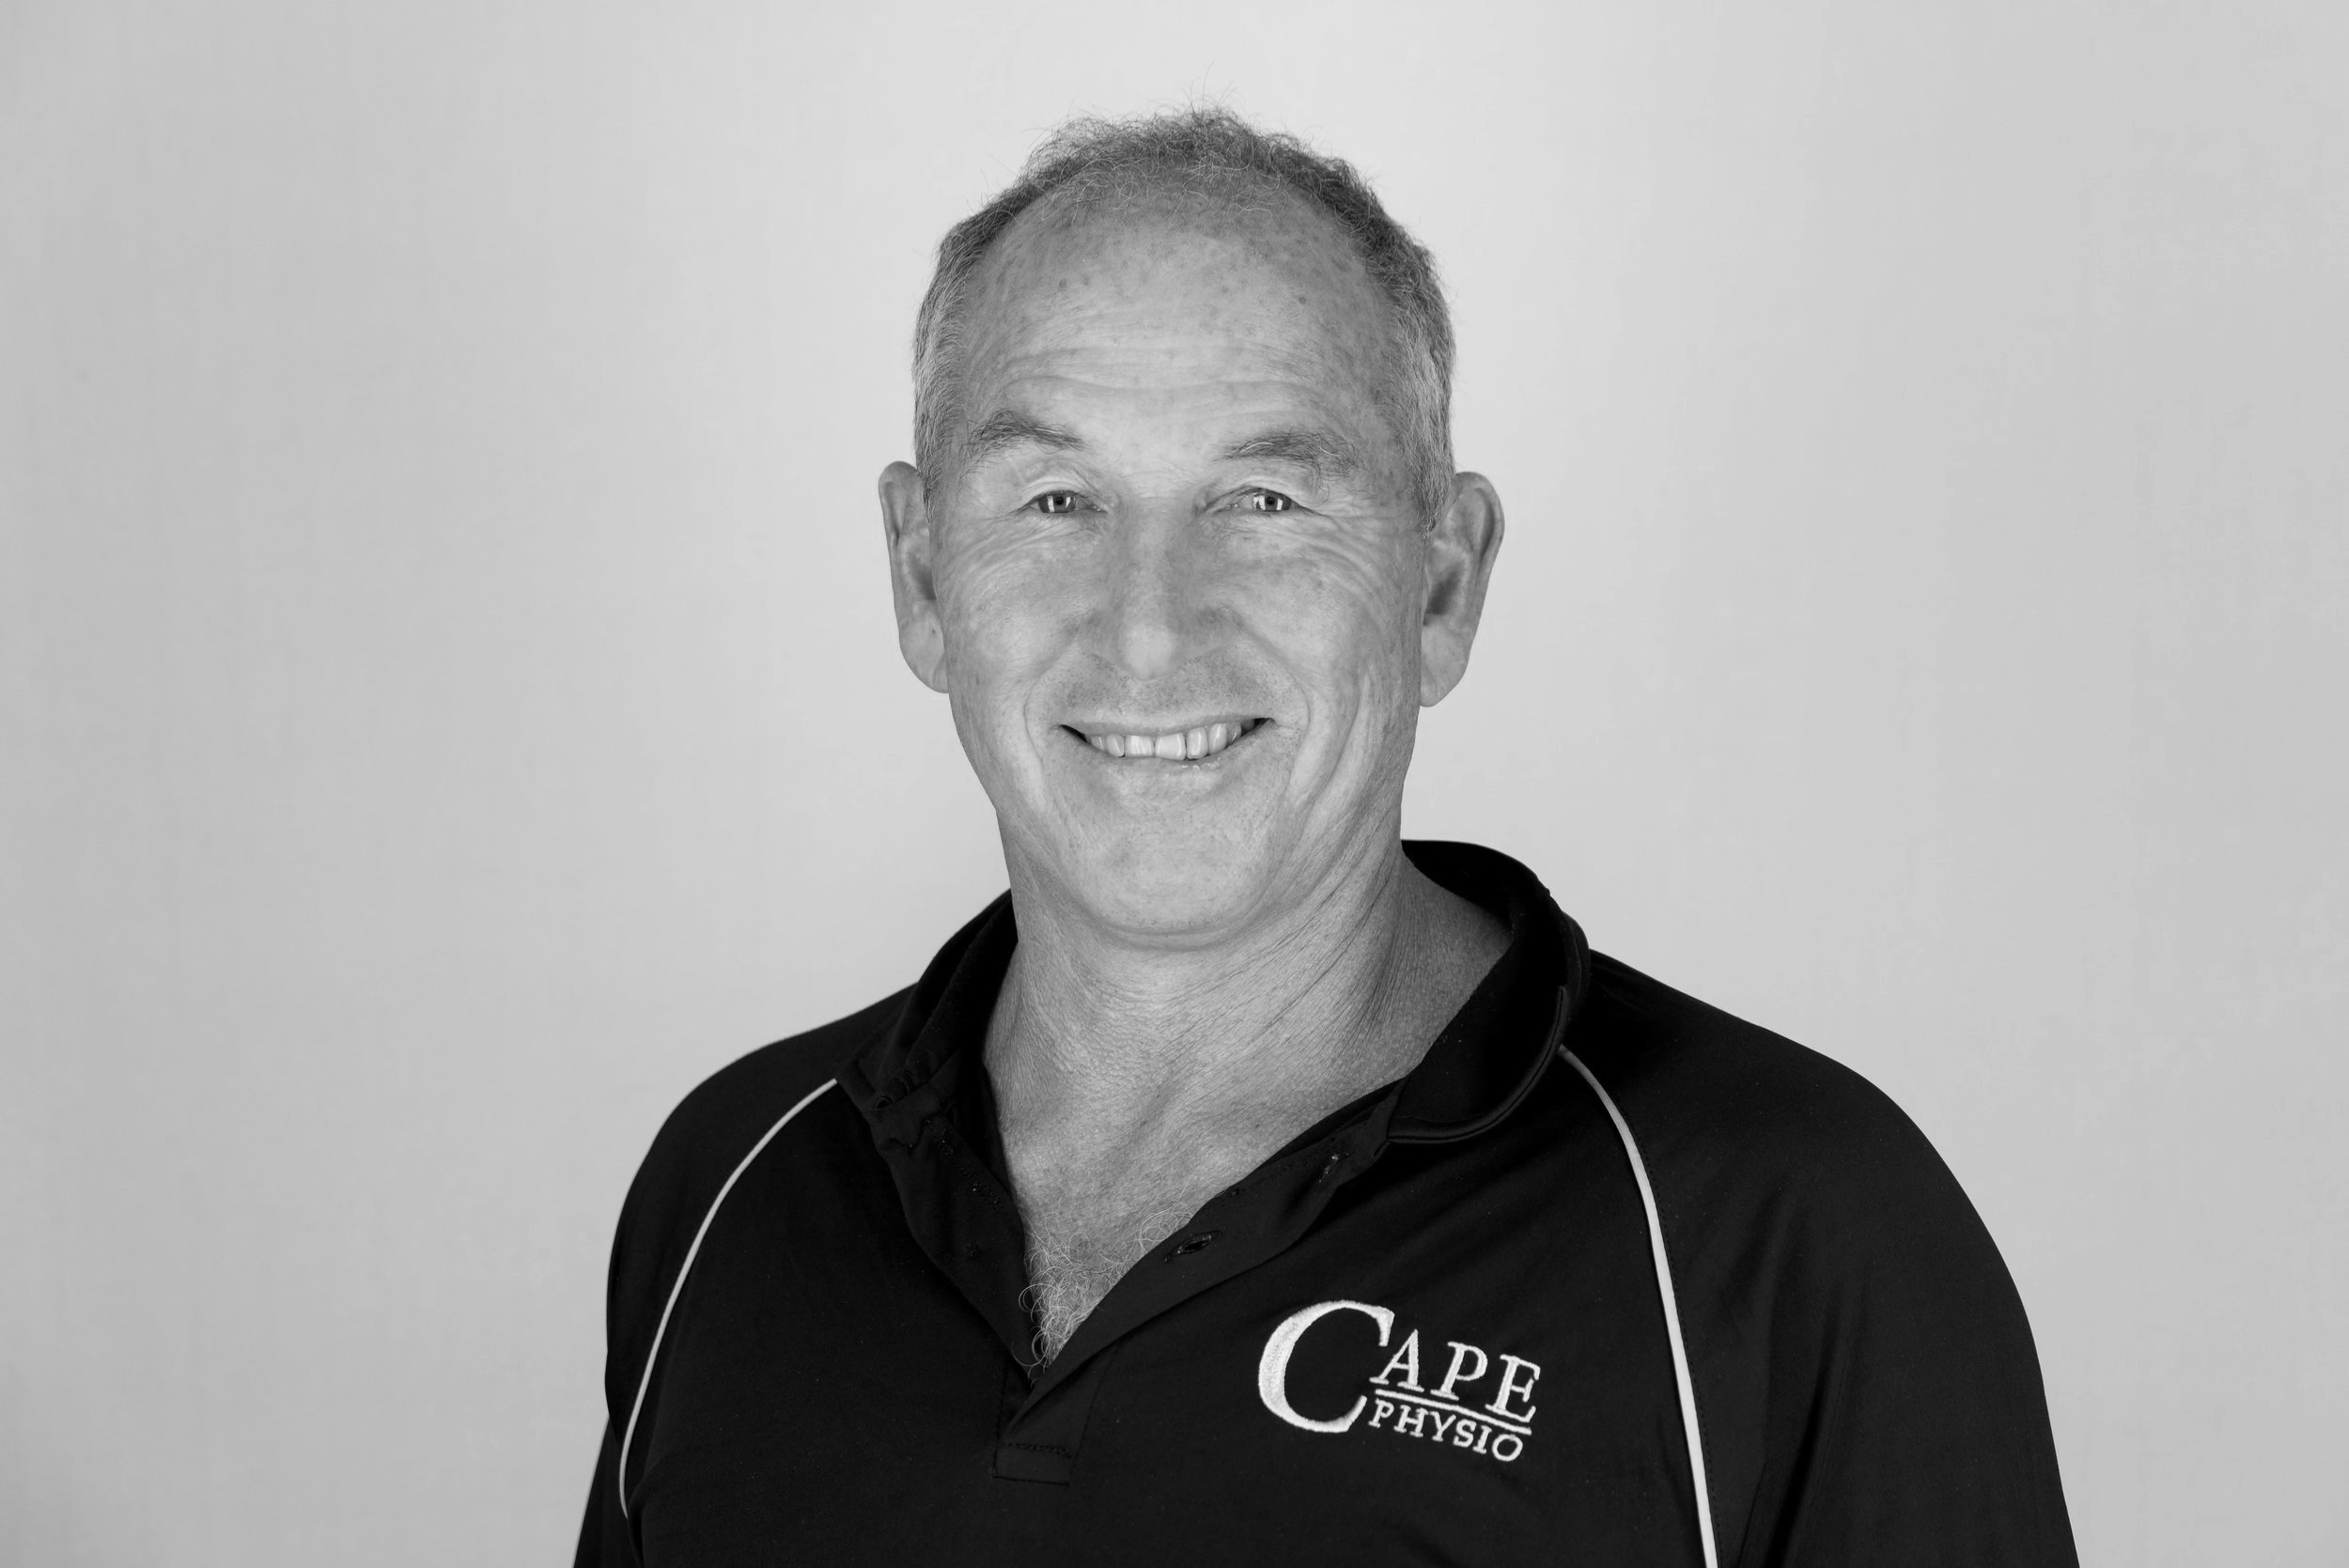 Mark Nicol - Senior Physiotherapist    Dip Phyty   Senior Physiotherapist and Managing Director  Mark has over 30 years' experience with extensive work in sports medicine and musculoskeletal therapy. Physio for New Zealand Athletics, New Zealand Sevens squad and currently team physio for The Hawkes Bay Magpies.  He enjoys all things outdoors, mainly surfing and diving as well as coaching rugby.